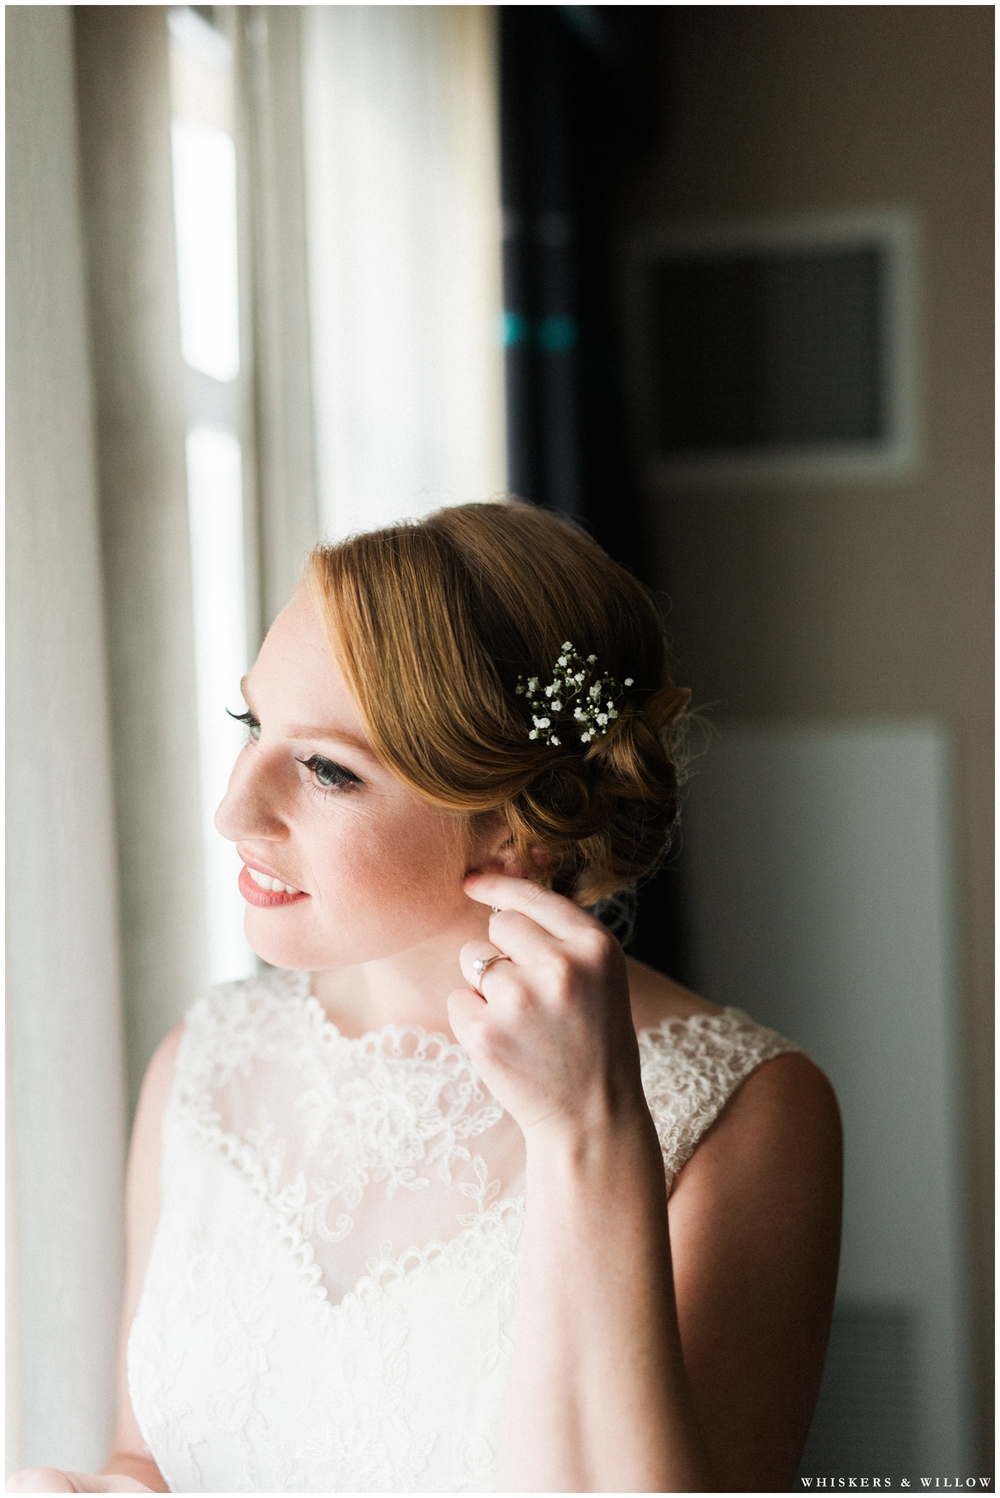 Lace Wedding Dress - Bridal getting ready photos - San Diego Wedding Photographer - Whiskers and Willow Photography